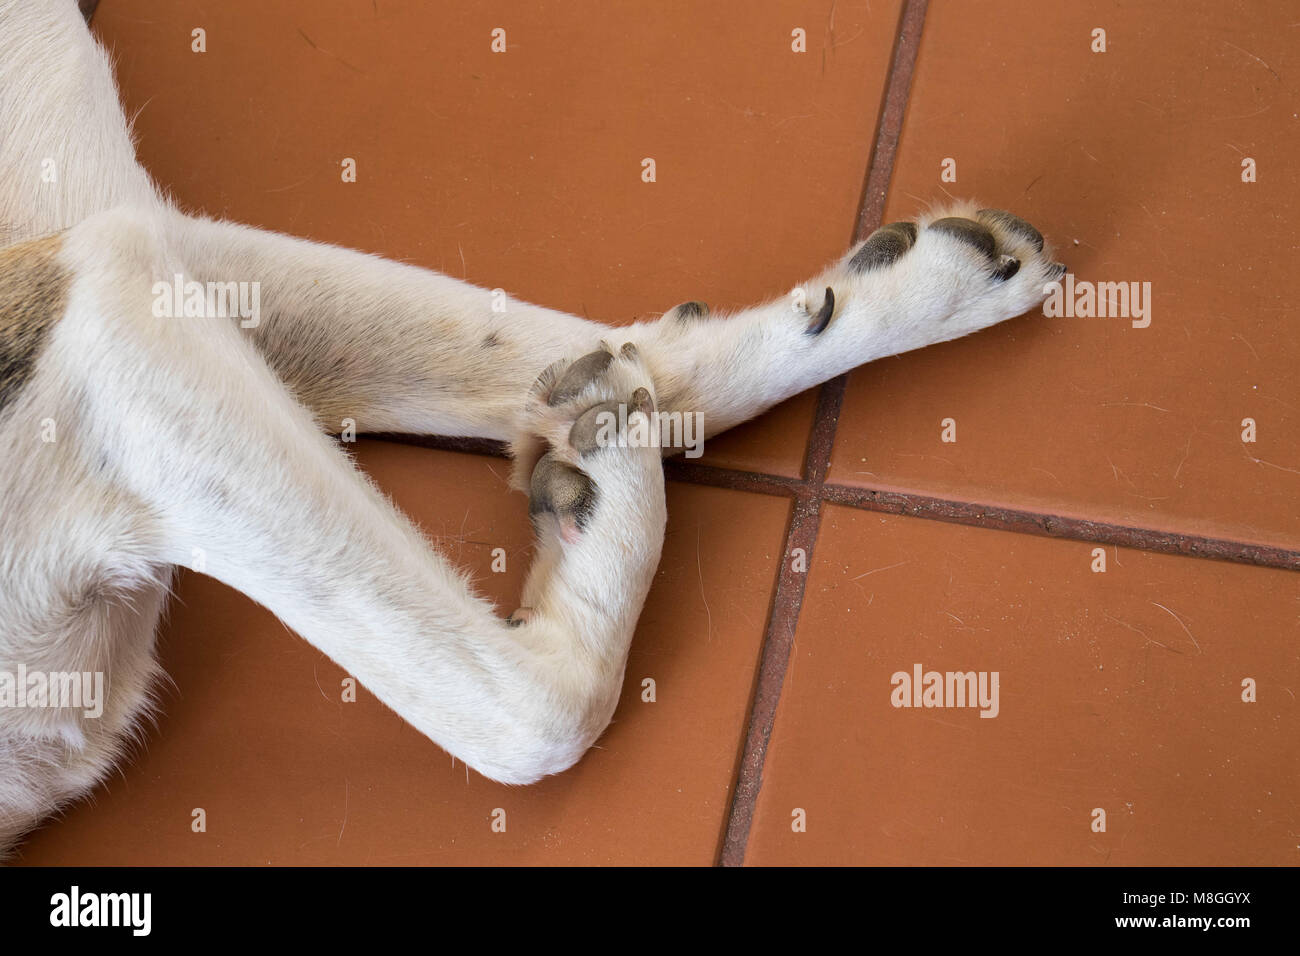 Canine anatomy the paws and legs of a domestic dog image with copy ...